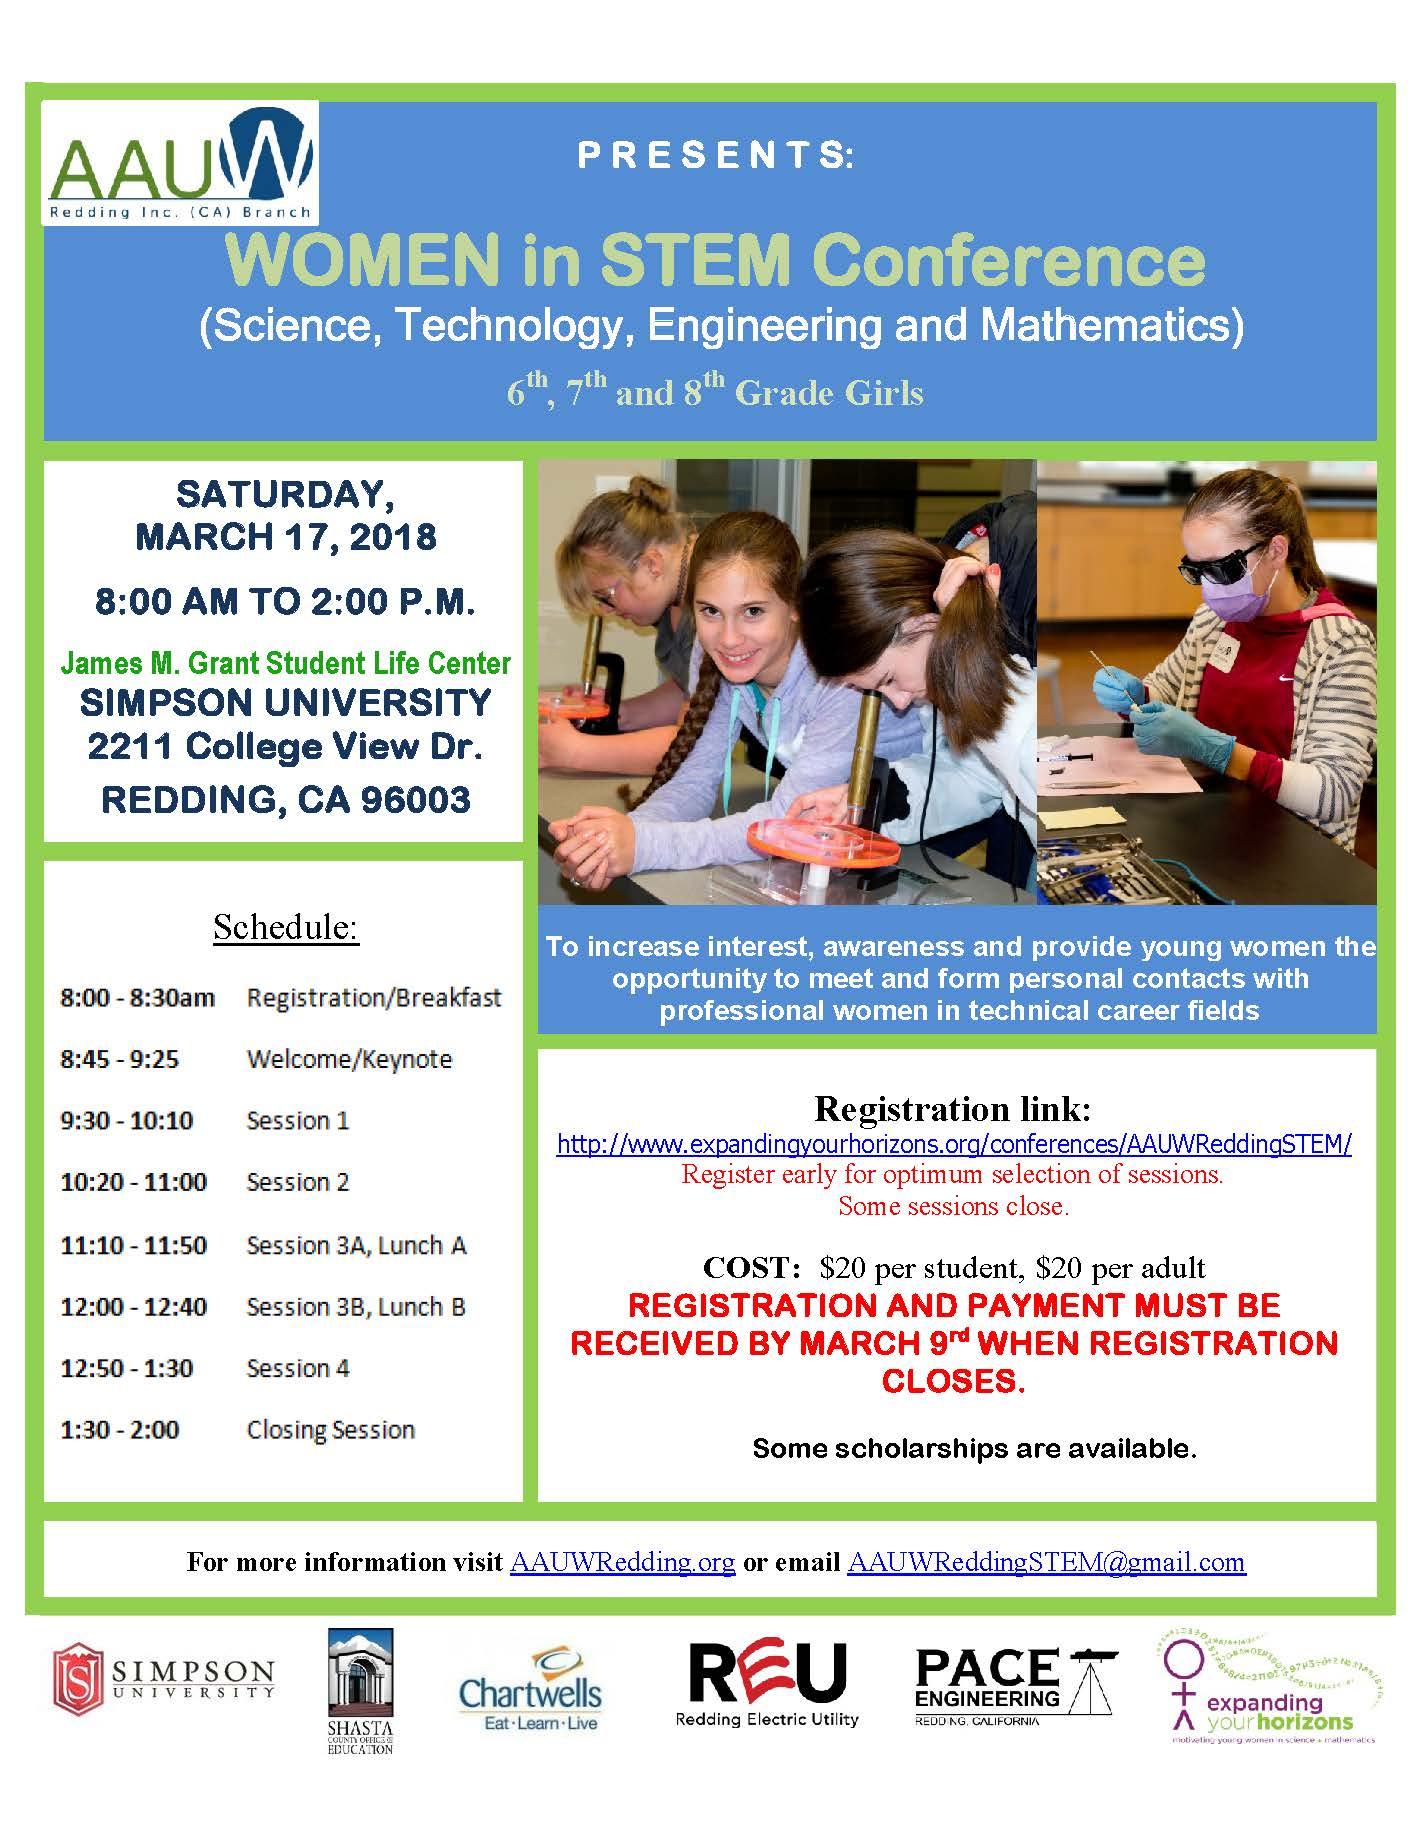 aauw women in stem conference 2018 flyer